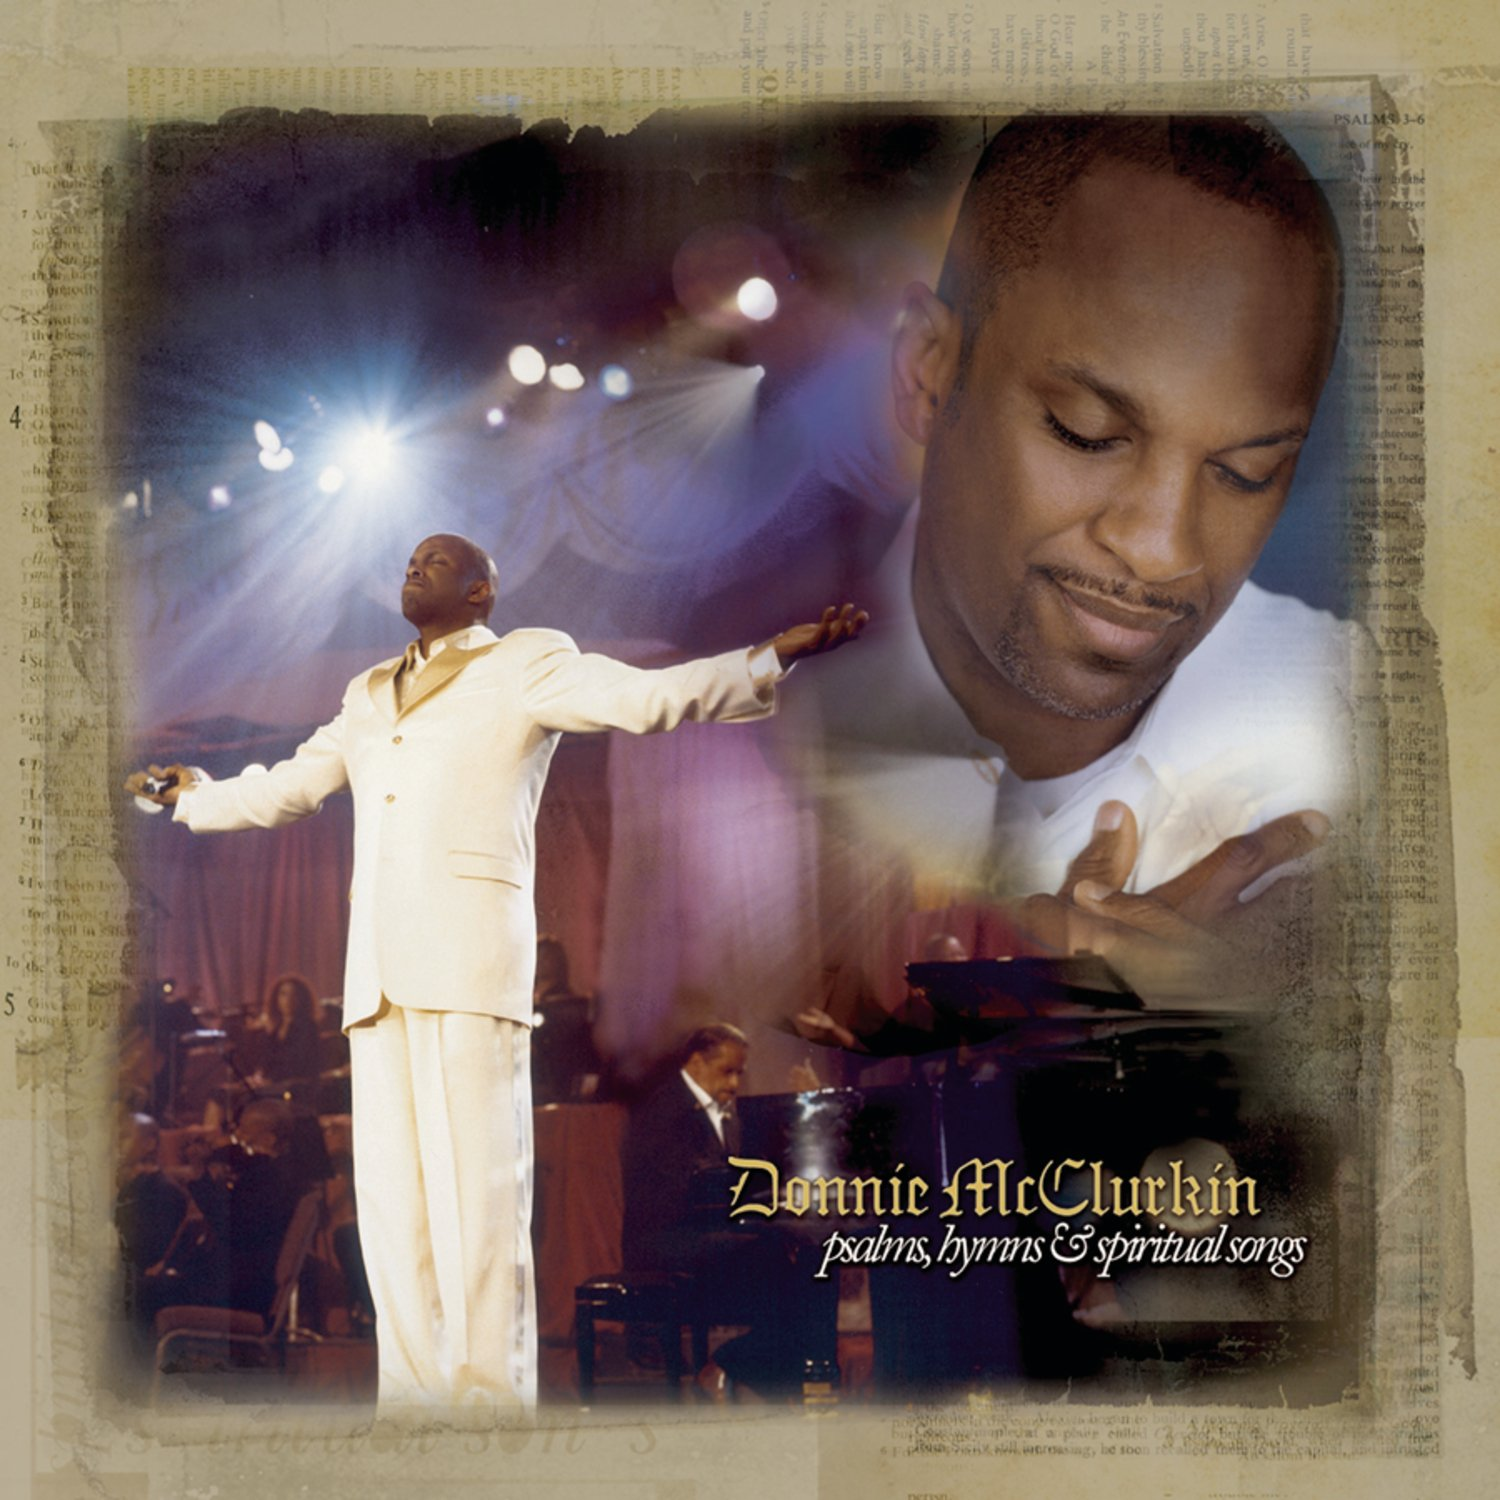 Art for I Love To Praise Him (Reprise) by Donnie McClurkin